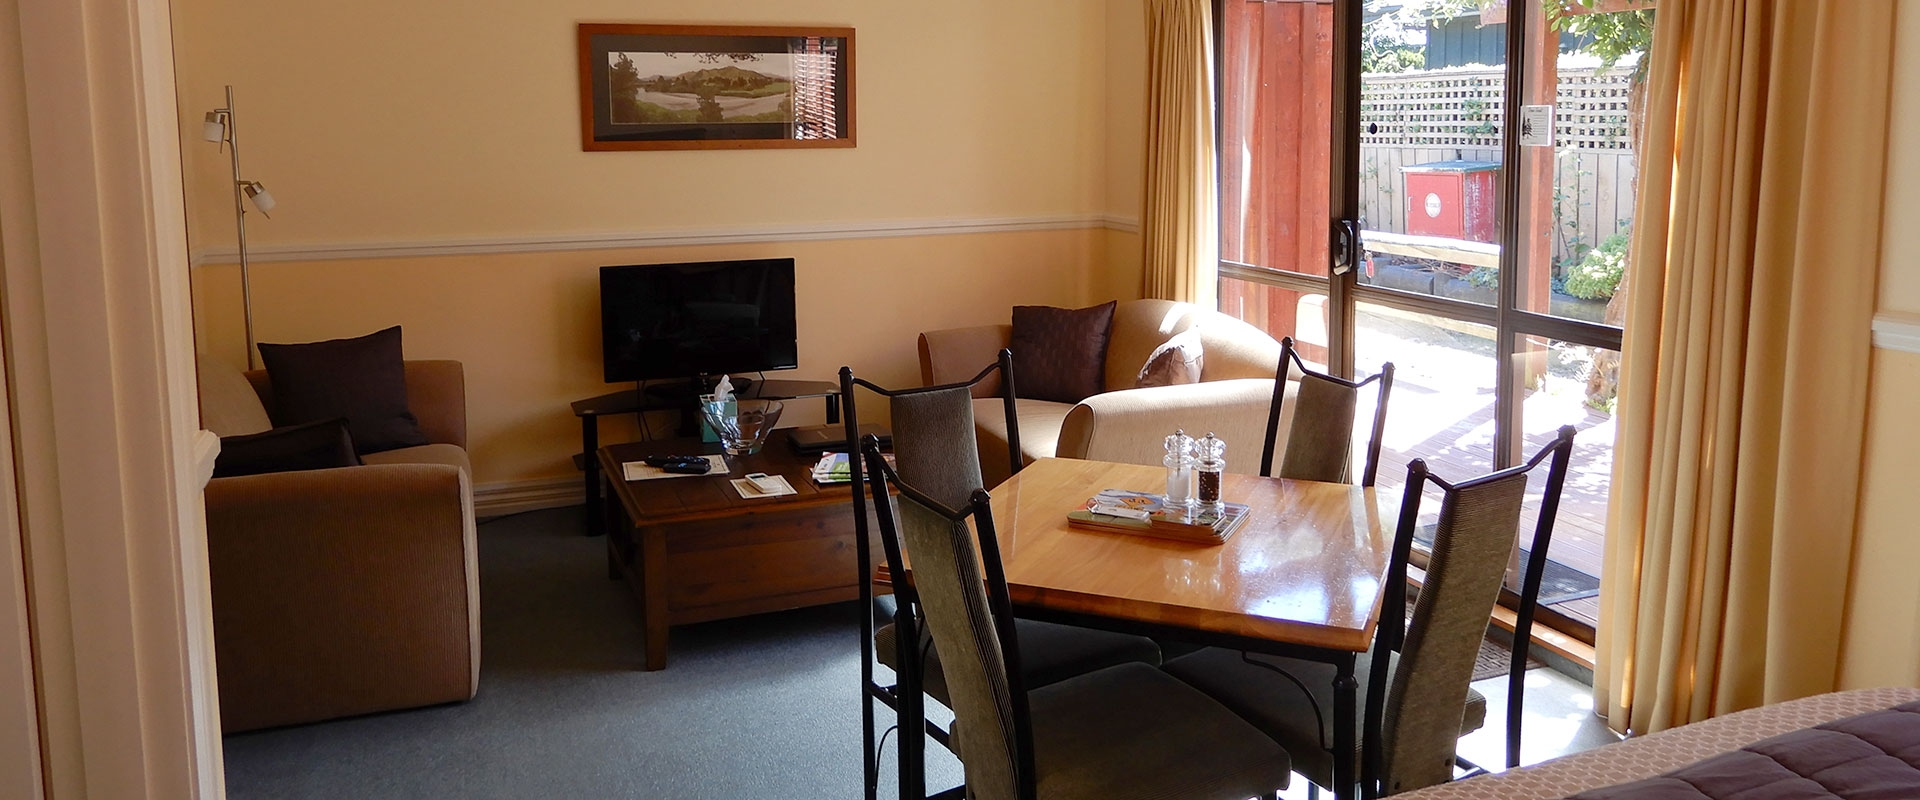 comfortable hanmer springs accommodation